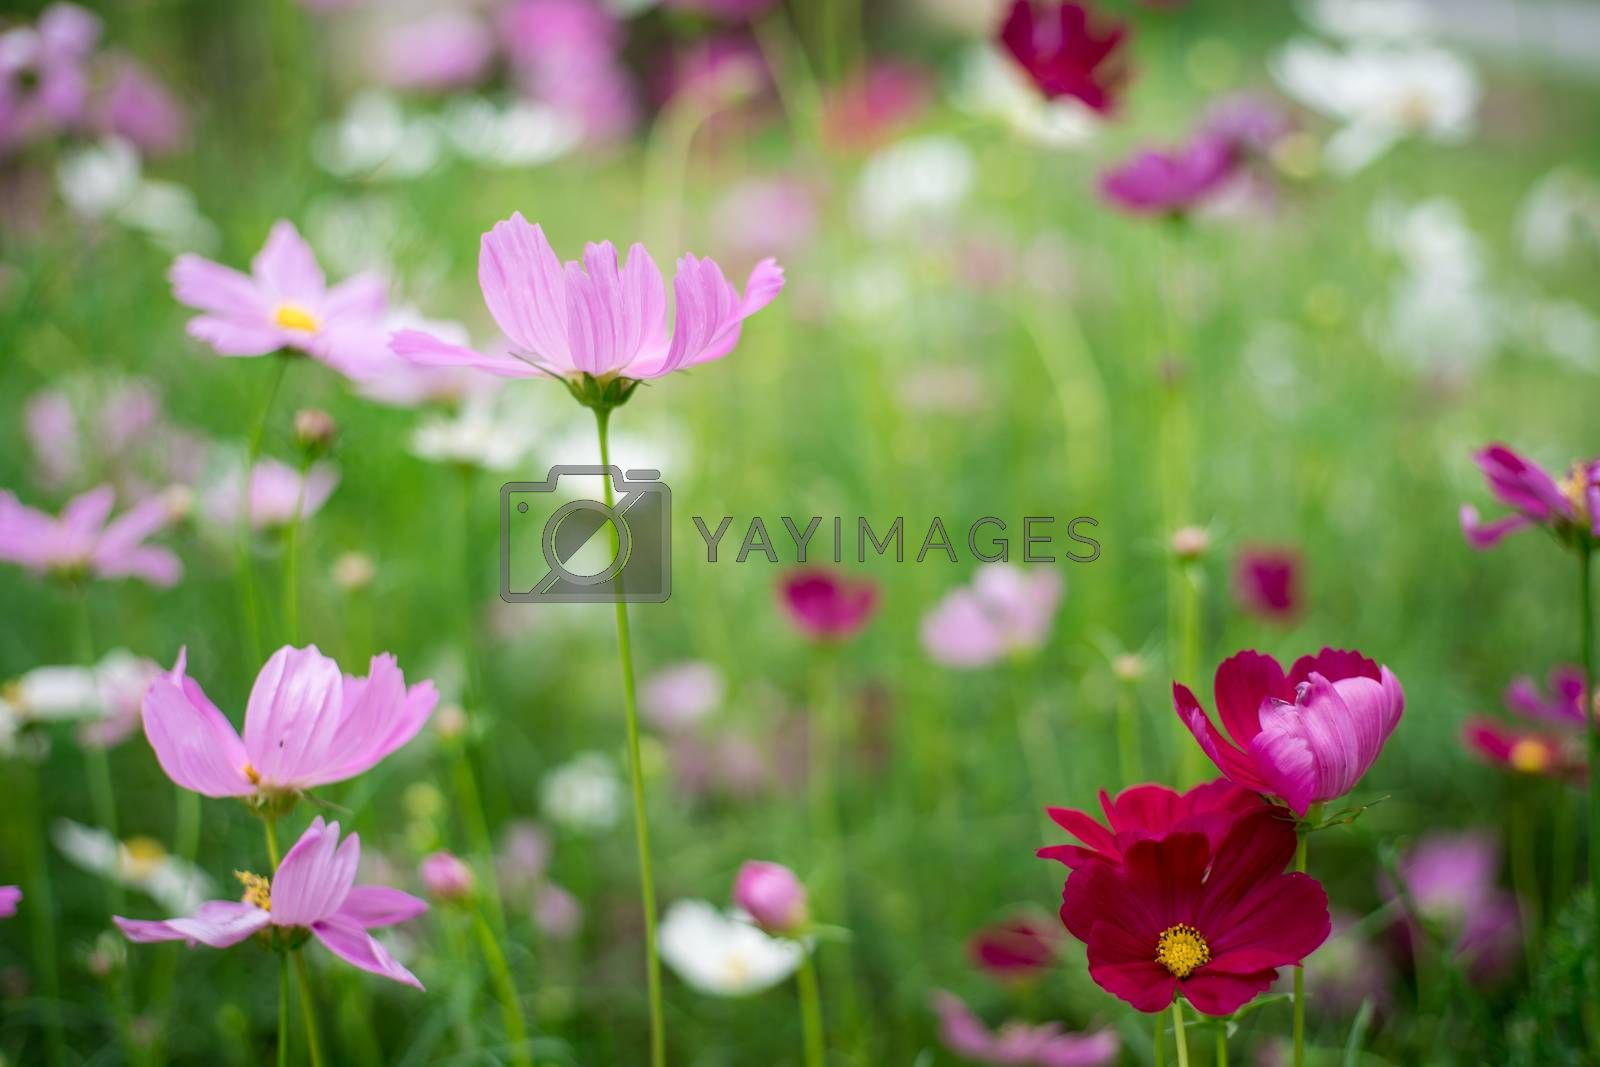 Royalty free image of pink cosmos flower in garden by antpkr